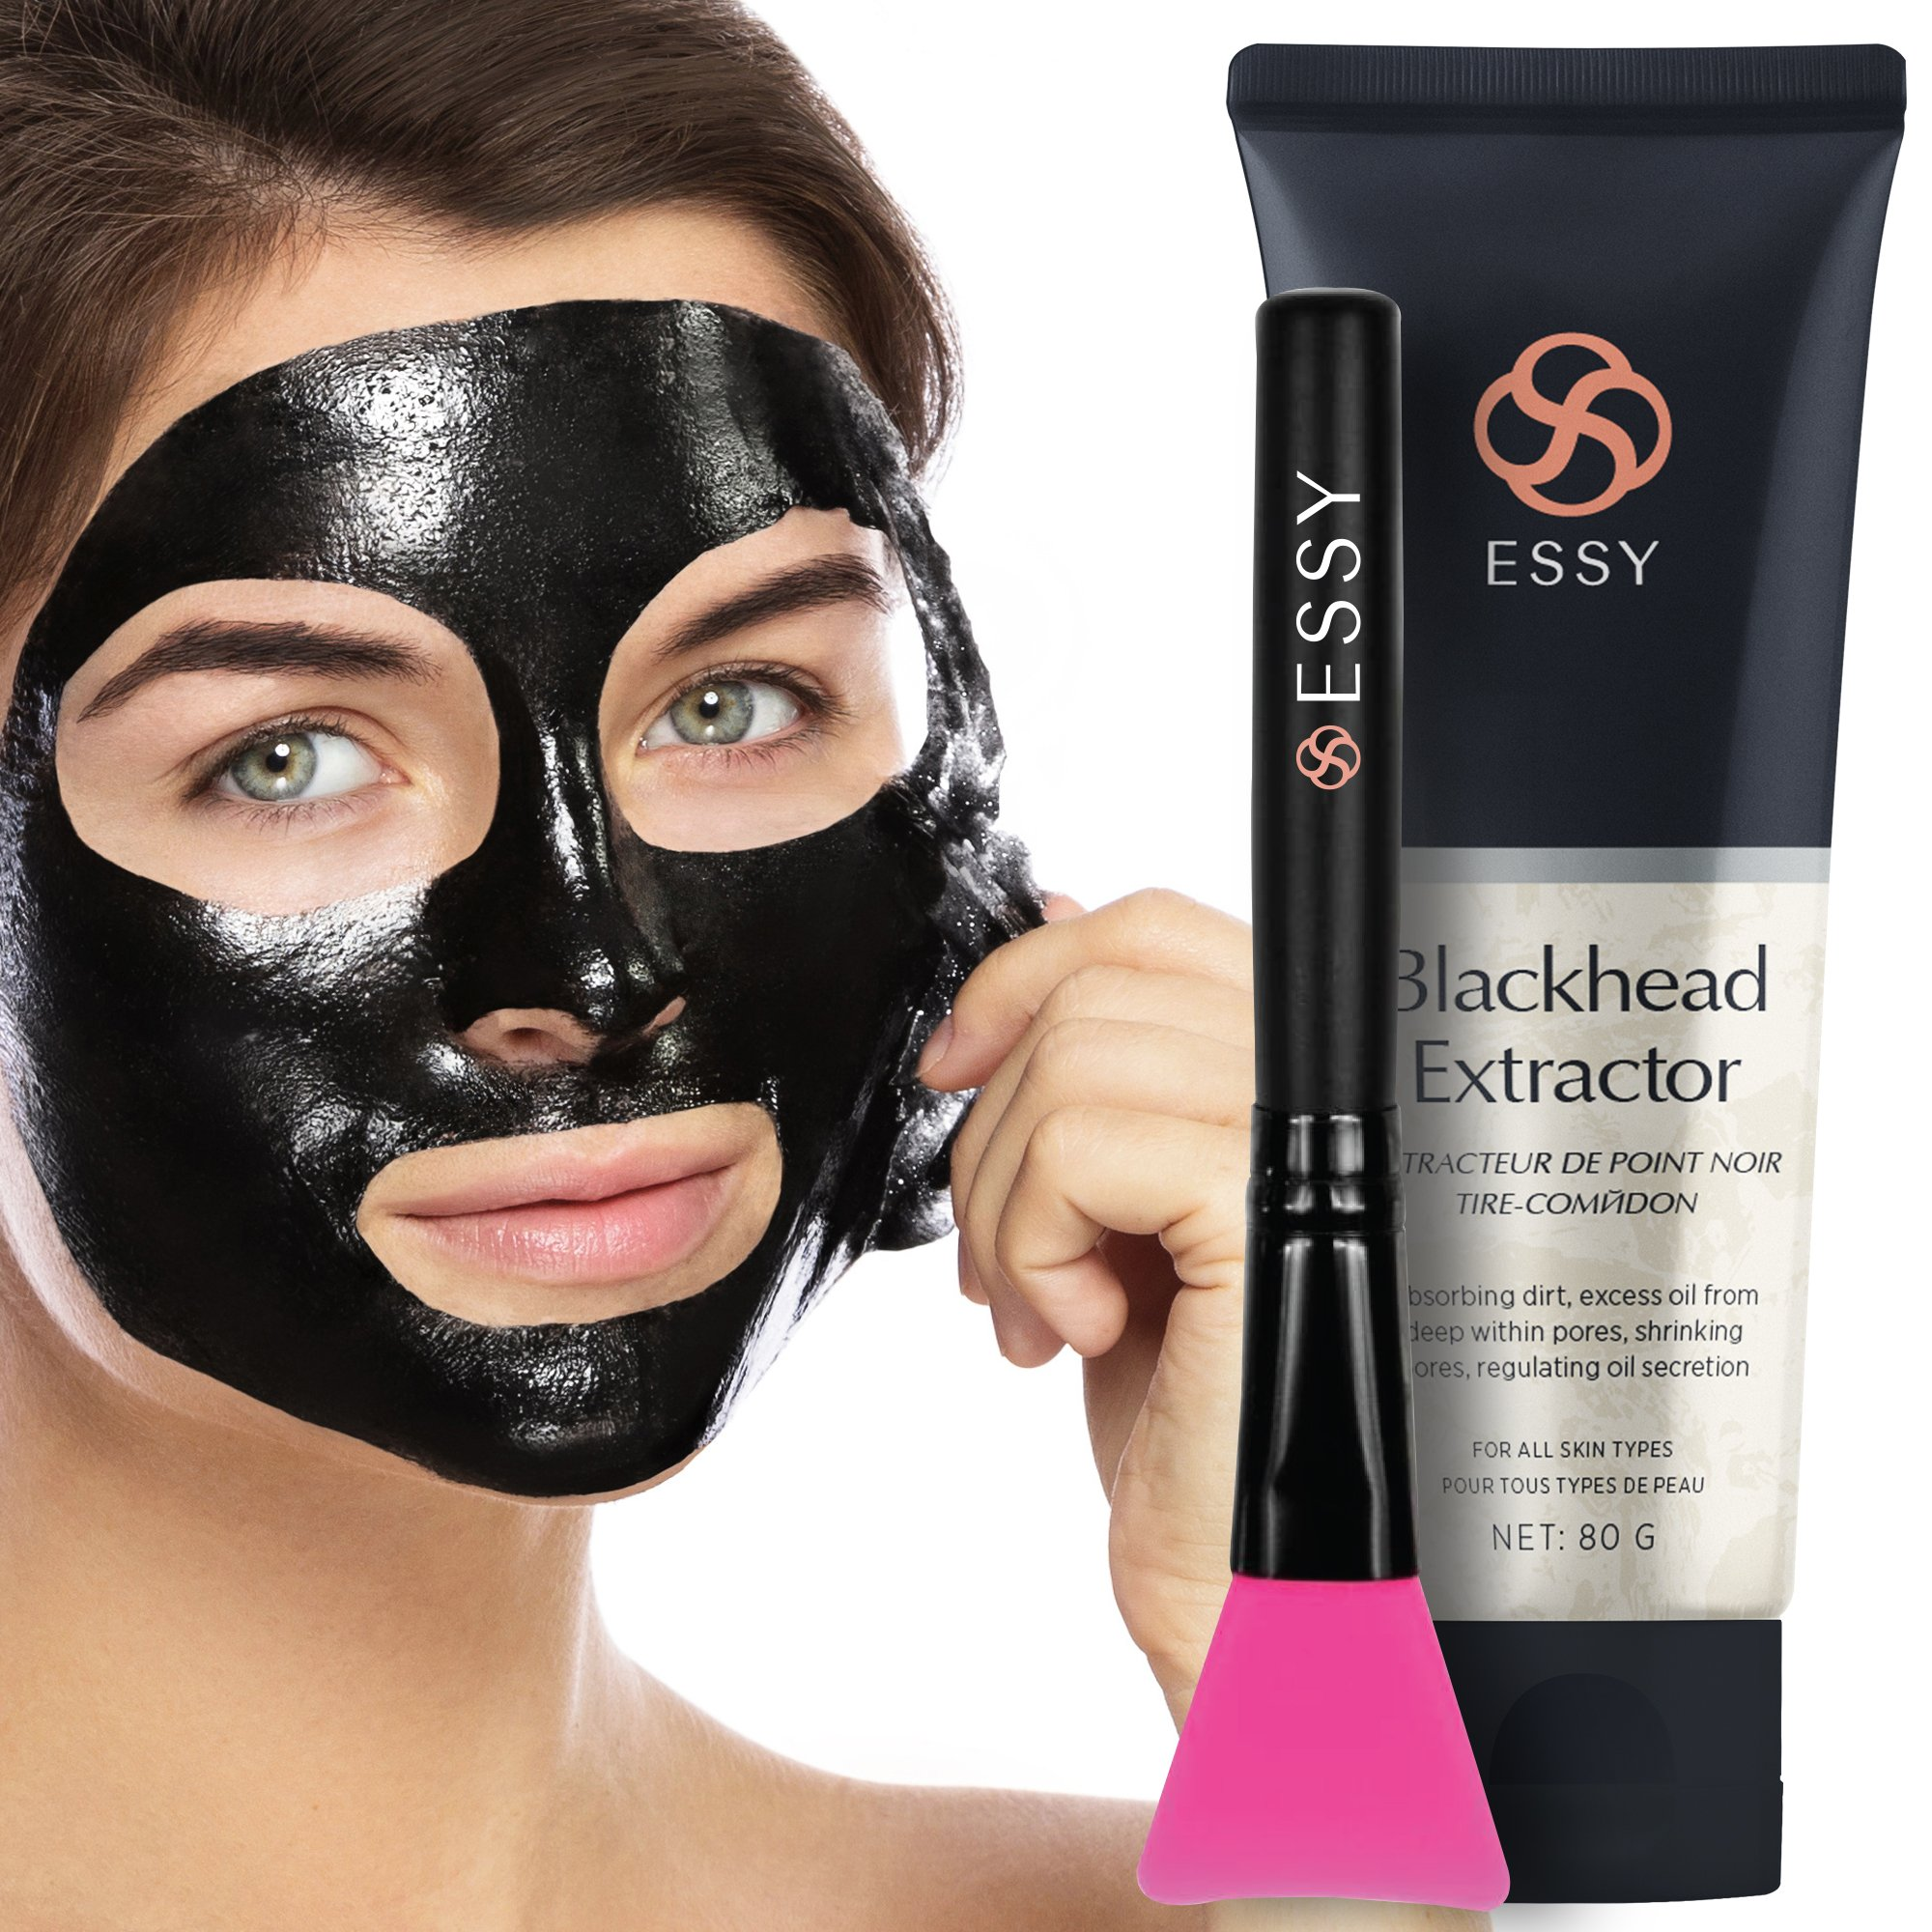 Black Peel off Mask,Charcoal Blackhead Remover Mask 80 gram- Deep Cleansing Mask, Deep Pore Cleanse for Acne, Oil Control, and Anti-Aging Wrinkle Reduction by AsaVea (Image #3)